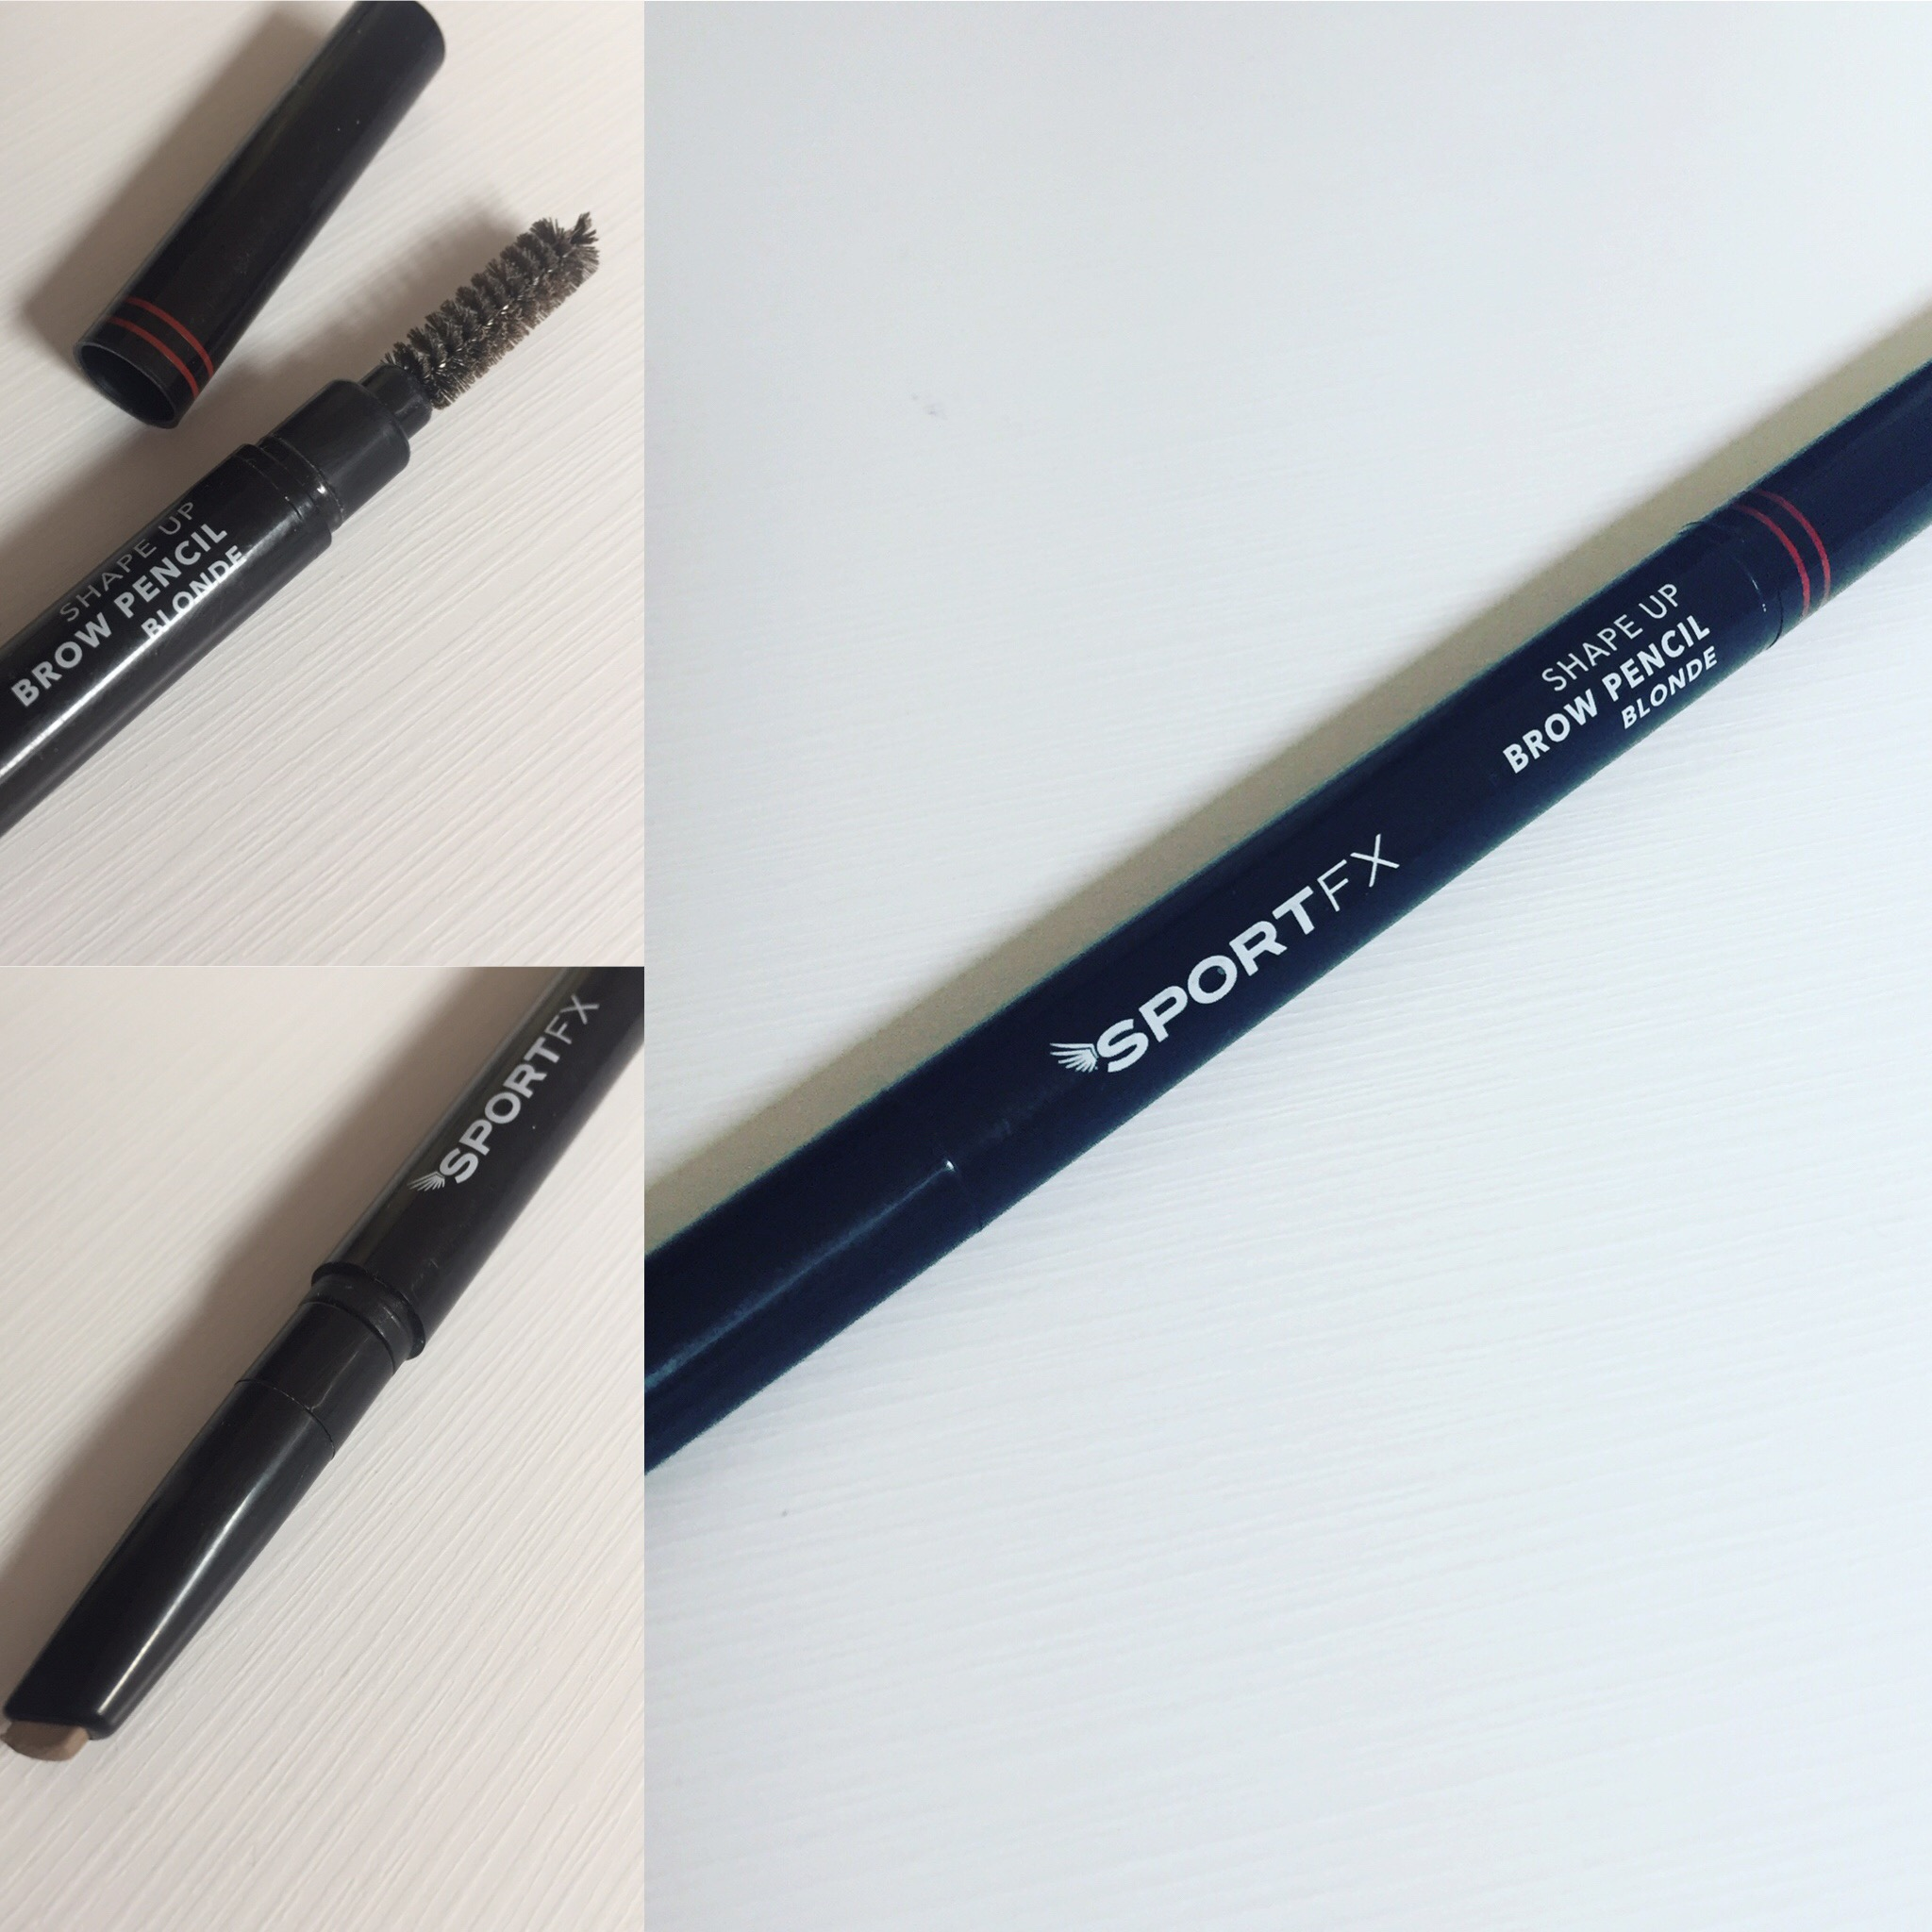 SportFX eyebrow pencil